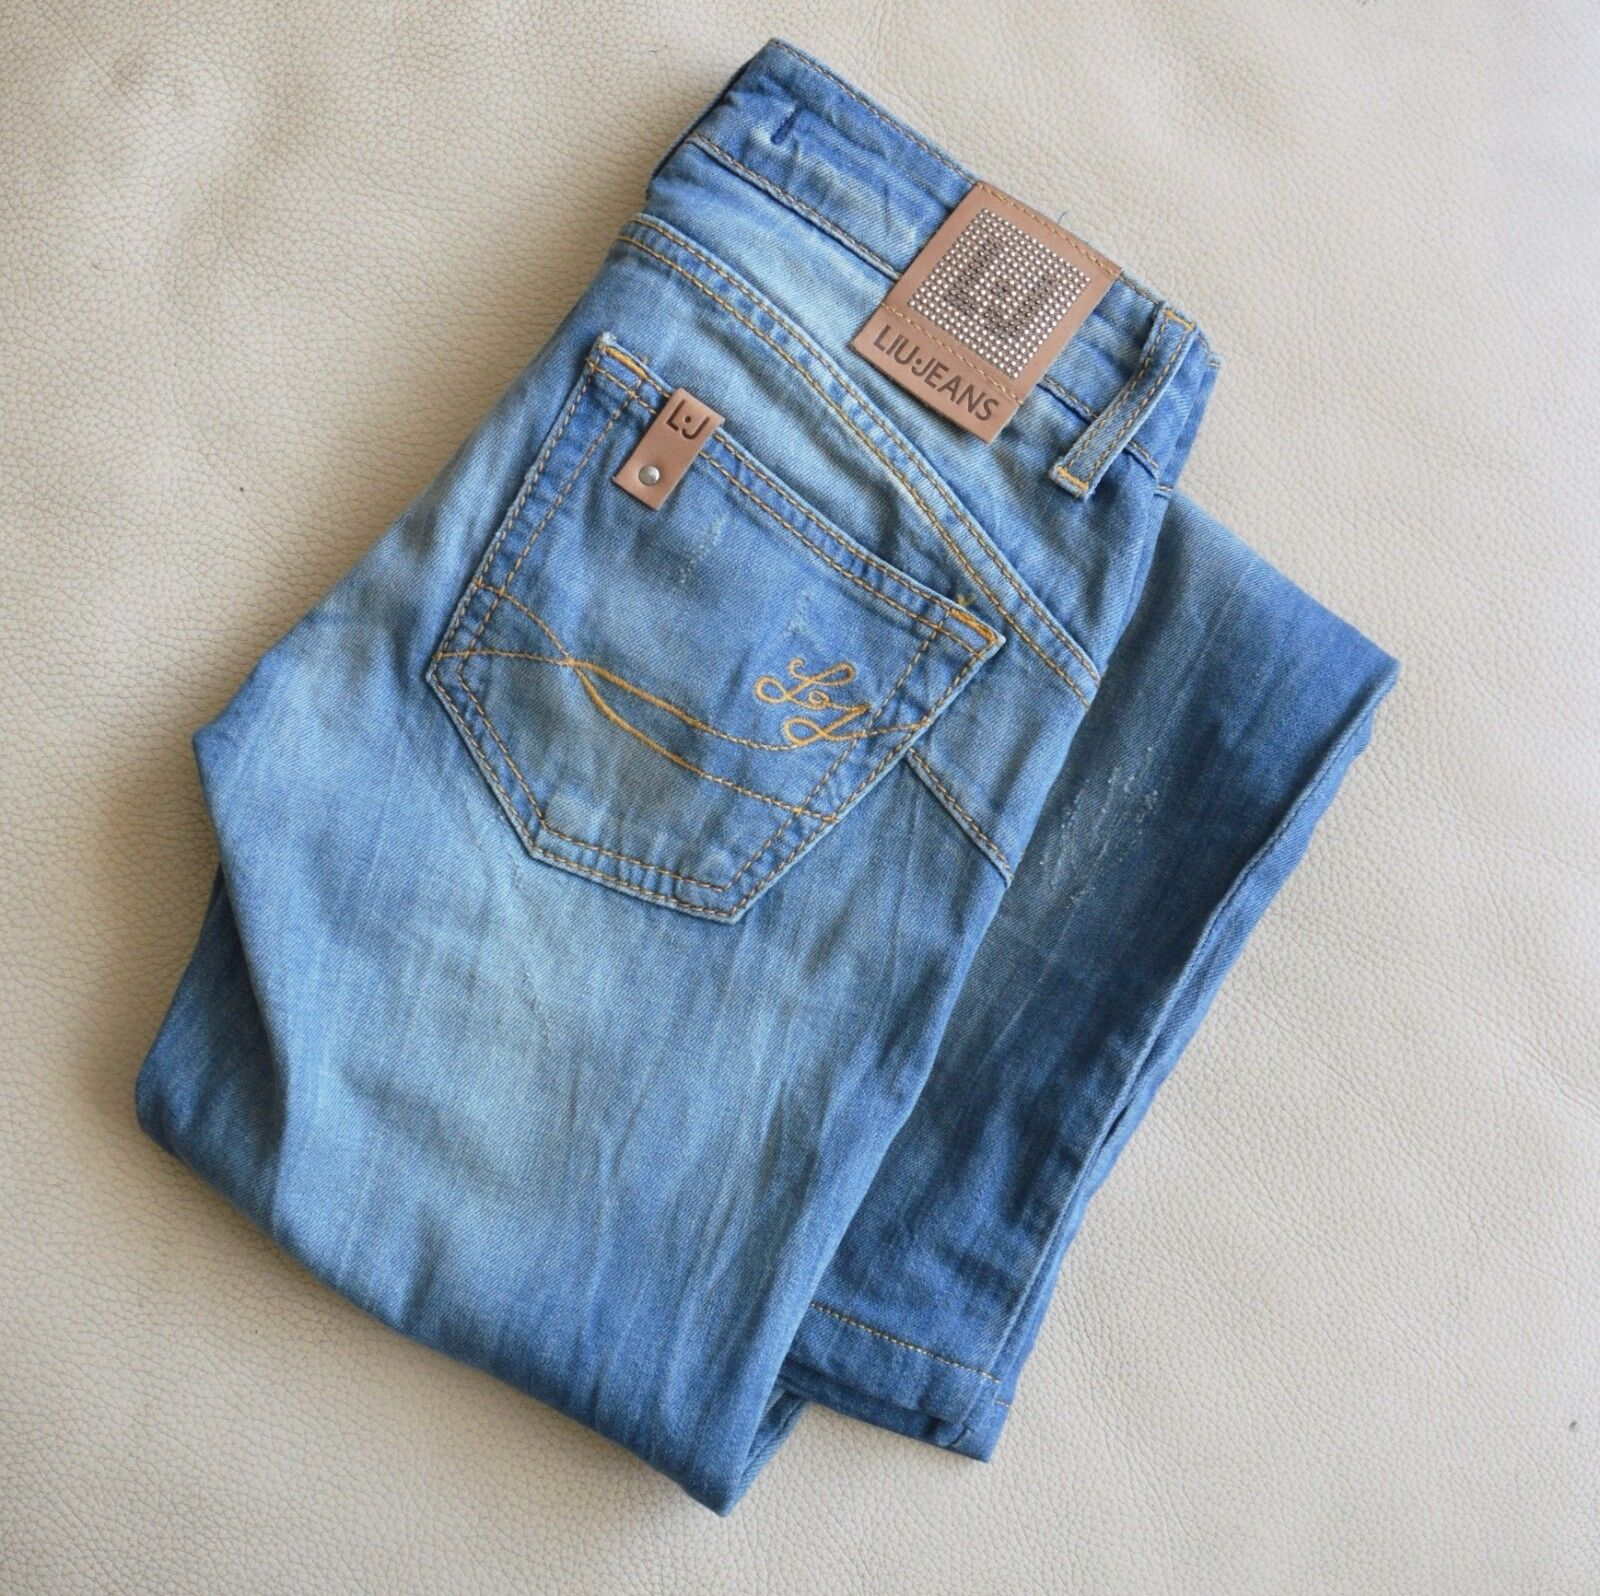 Liu Jo Jeans Straight bluee Denim Washed Women Jeans Low-rise Size 25